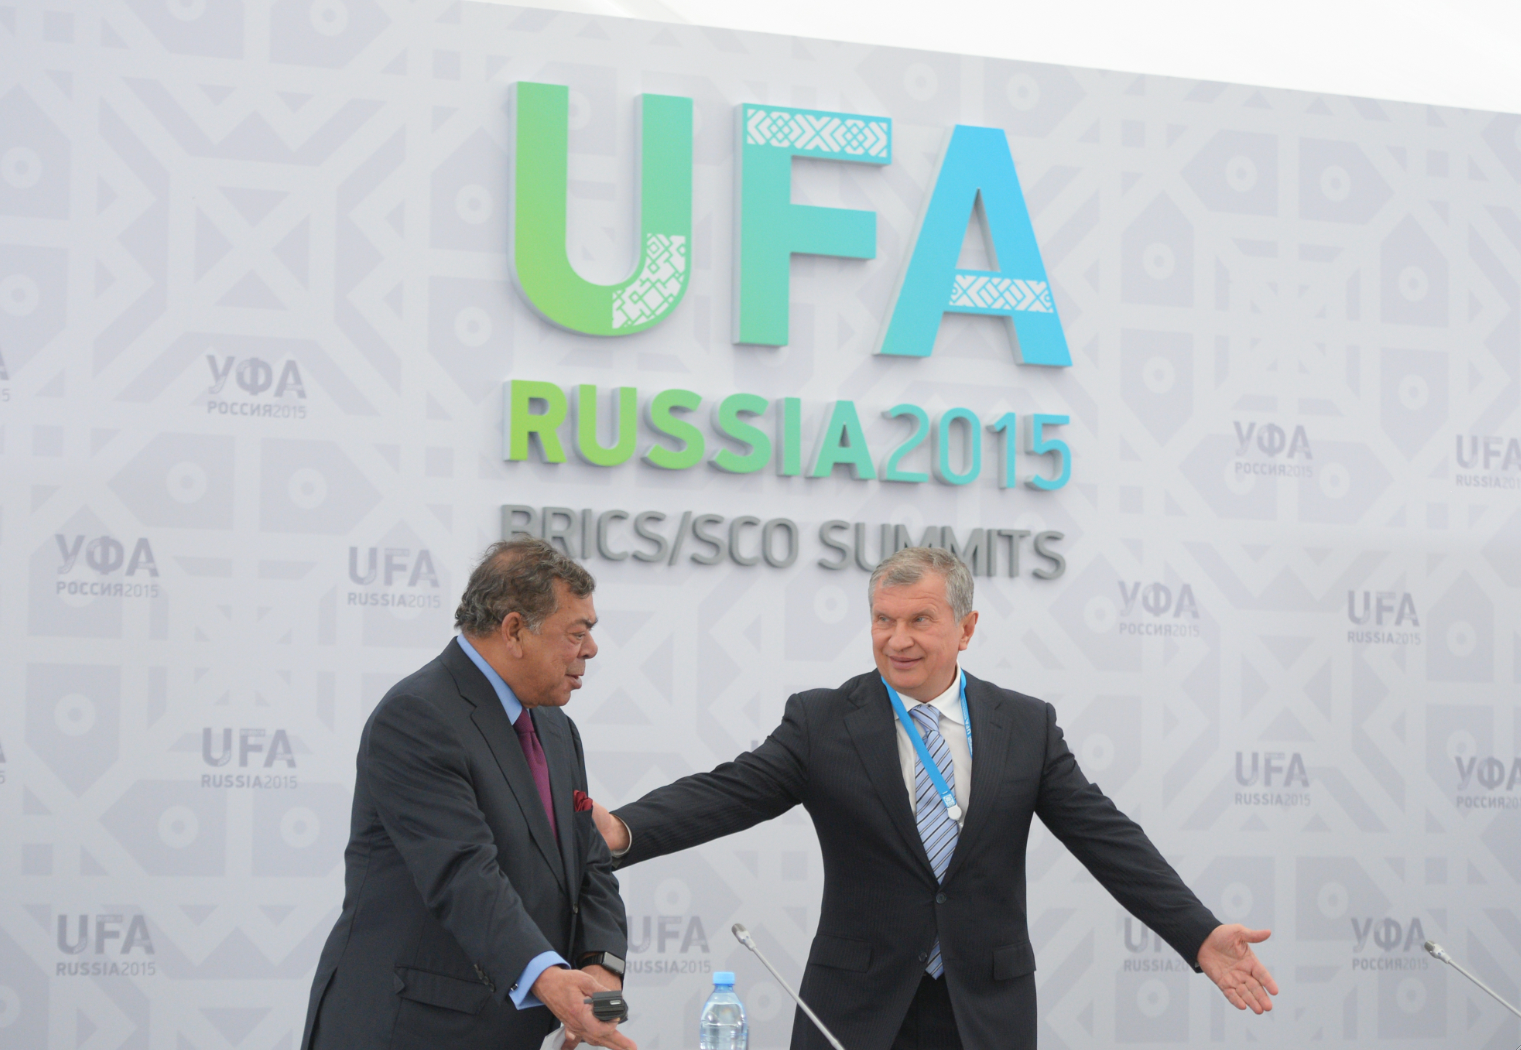 Shashi Ruia, chairman and co-founder of Essar Group, left, and Igor Sechin Rosneft CEO.